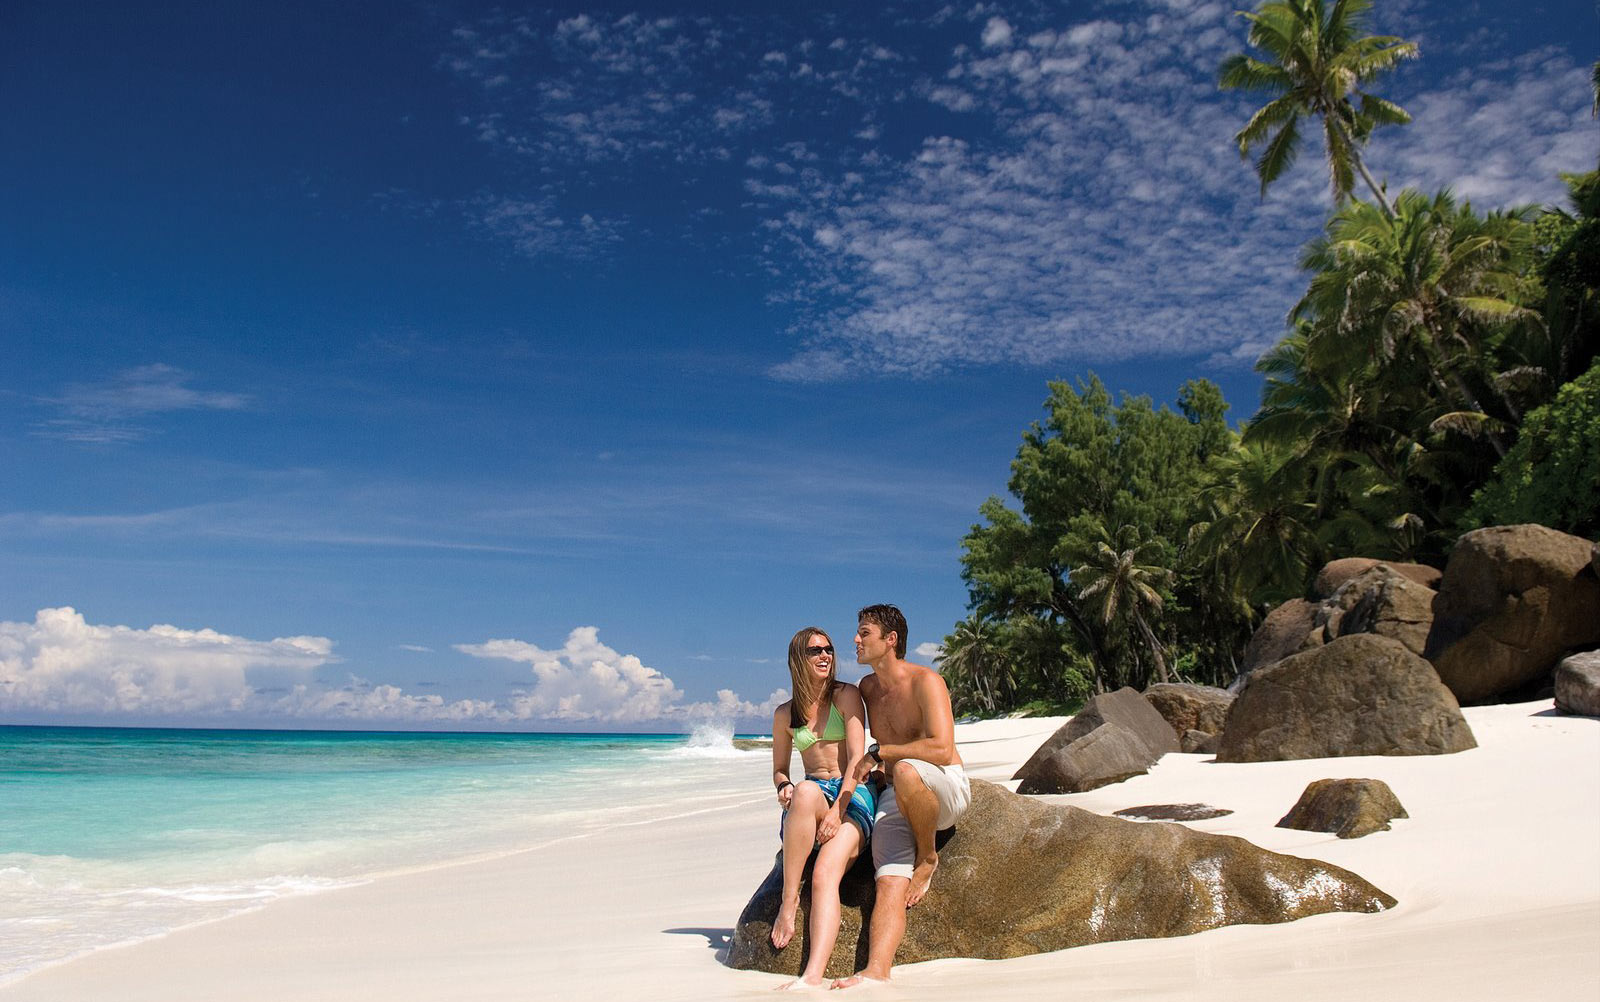 Top Hot Spots For Honeymoon Bahamas